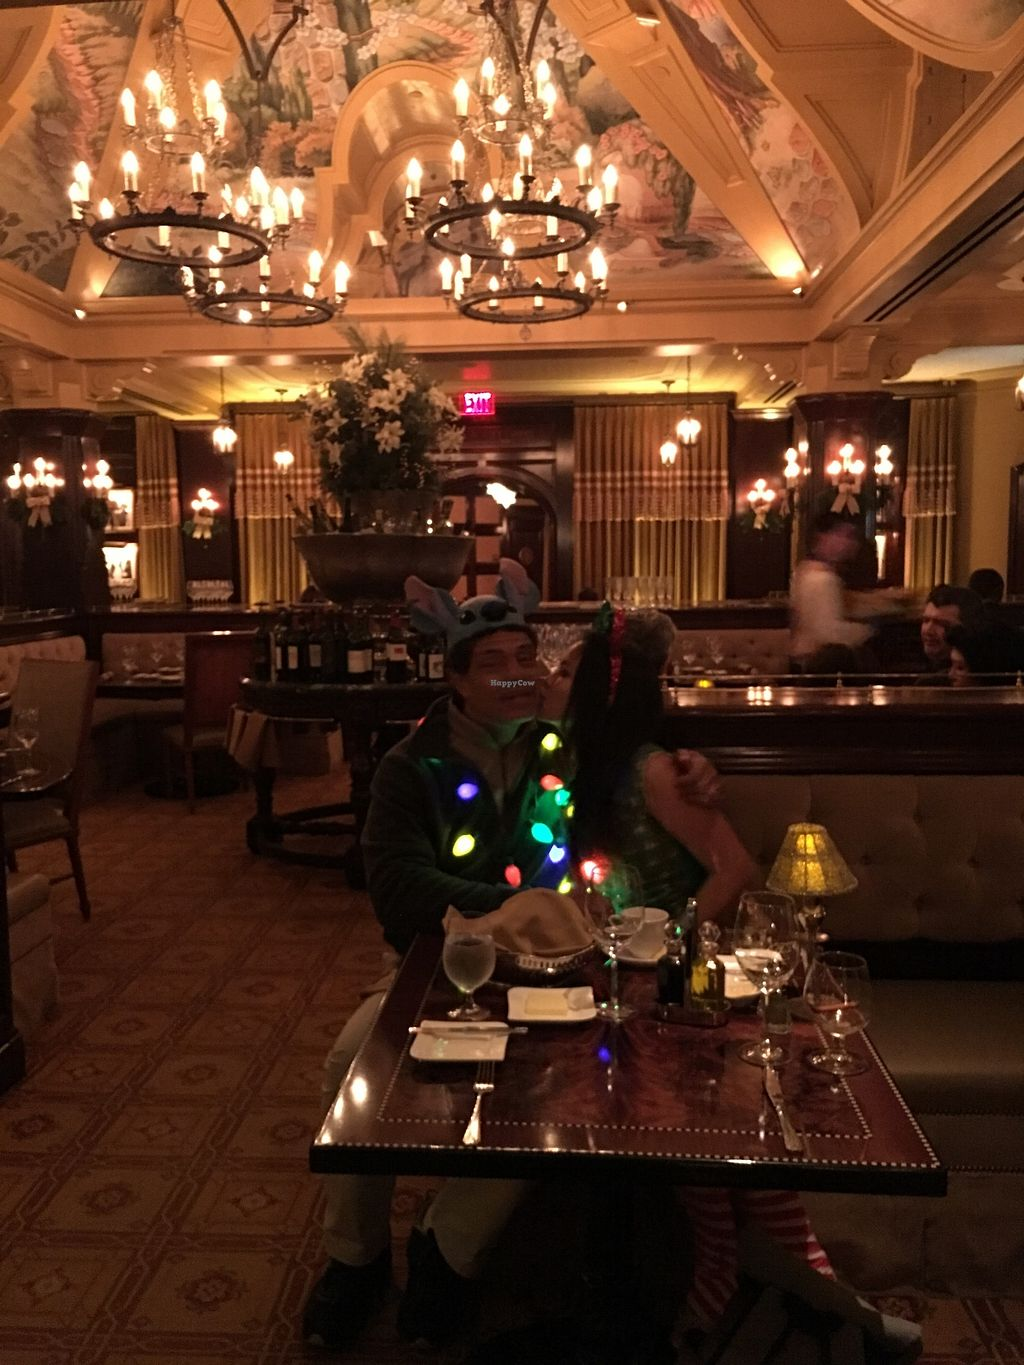 "Photo of Disneyland - Carthay Circle  by <a href=""/members/profile/vegansuncake"">vegansuncake</a> <br/>Most romantic restaurant at Disneyland! <br/> January 13, 2018  - <a href='/contact/abuse/image/71115/345955'>Report</a>"